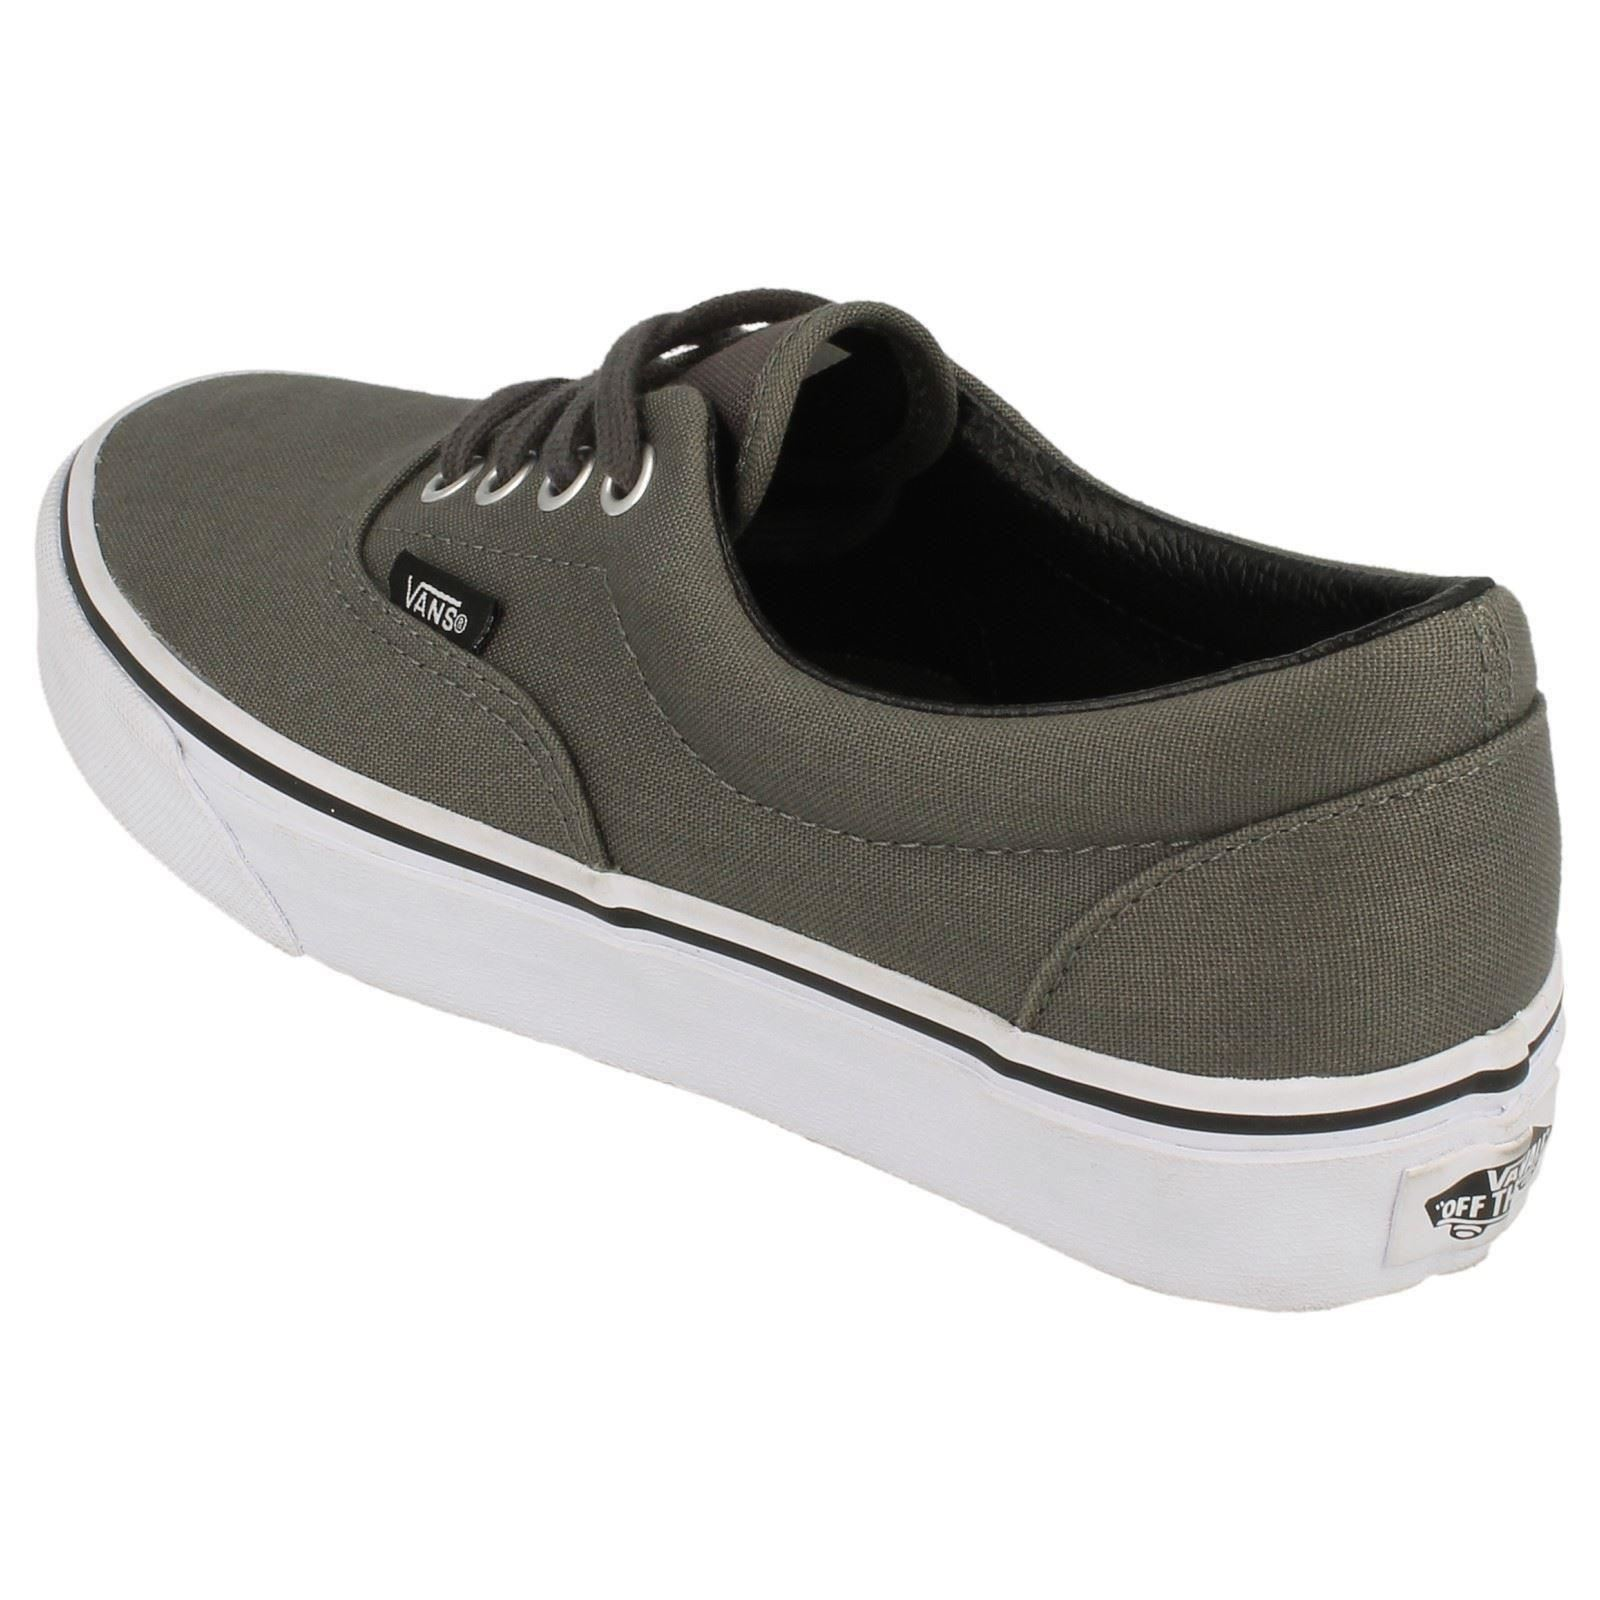 vans off the wall mens shoes